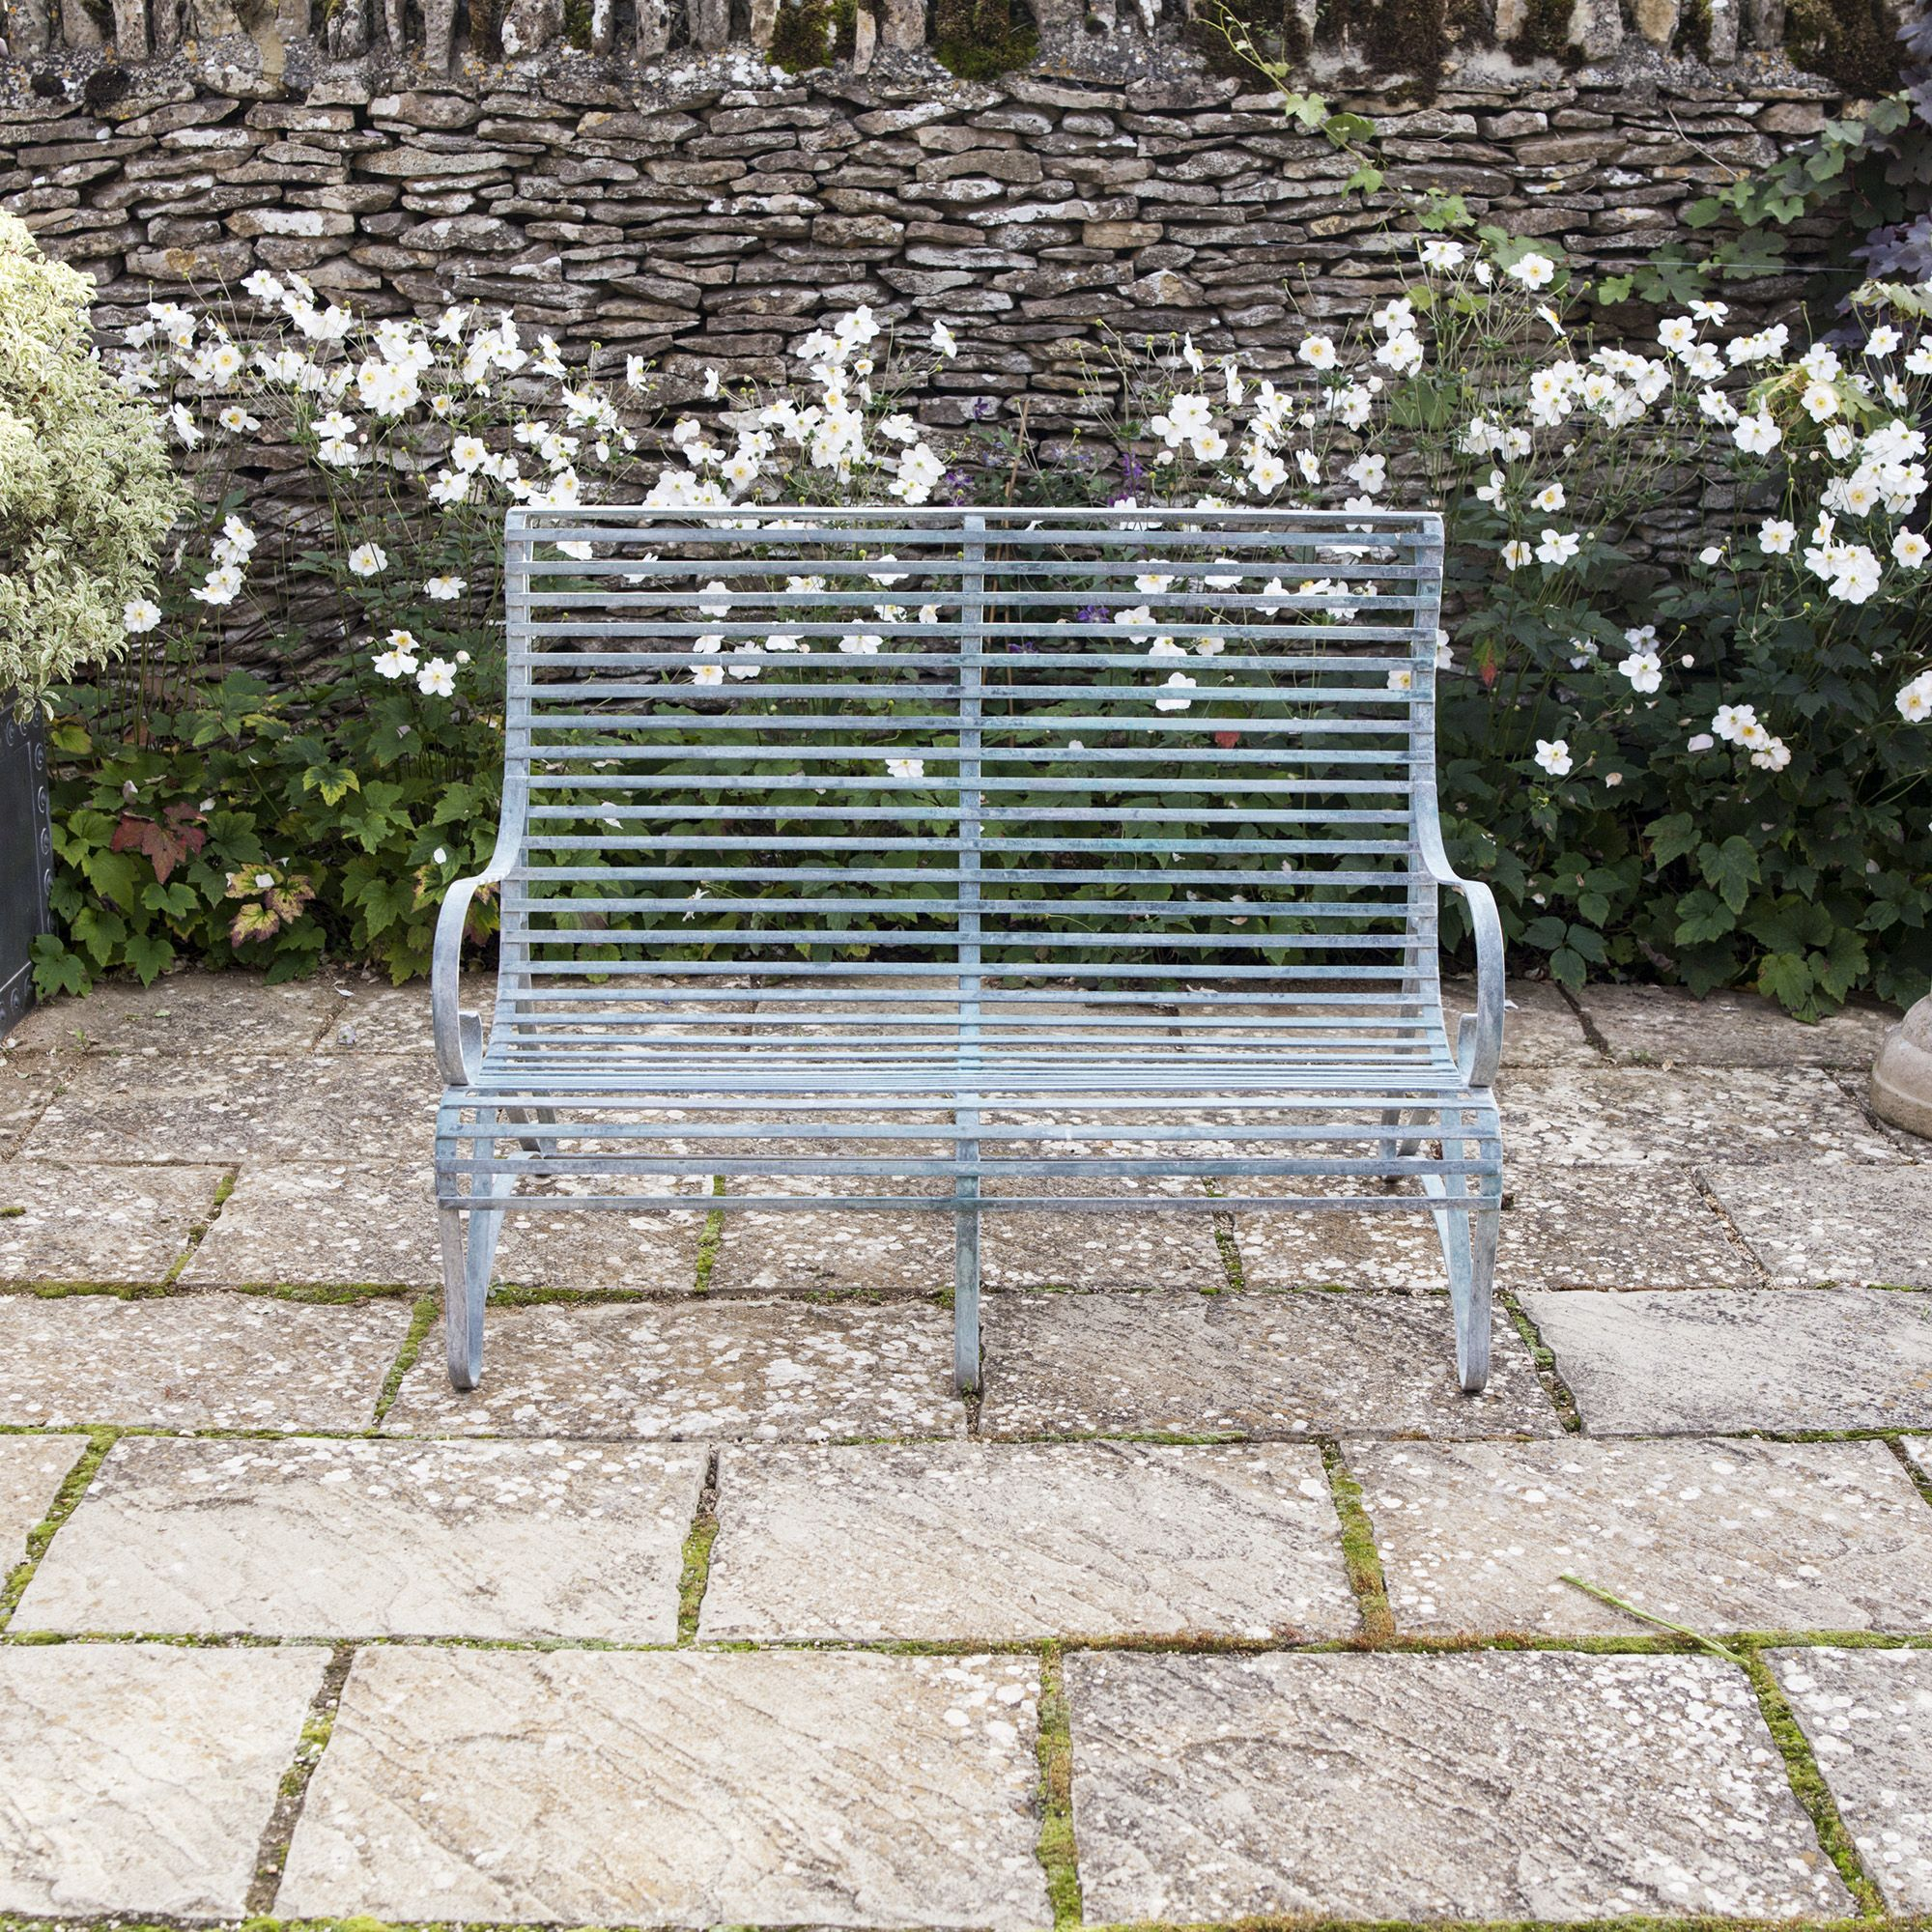 Sensational Verdigris Roll Top Garden Bench 2 Seater Park Life Metal Short Links Chair Design For Home Short Linksinfo